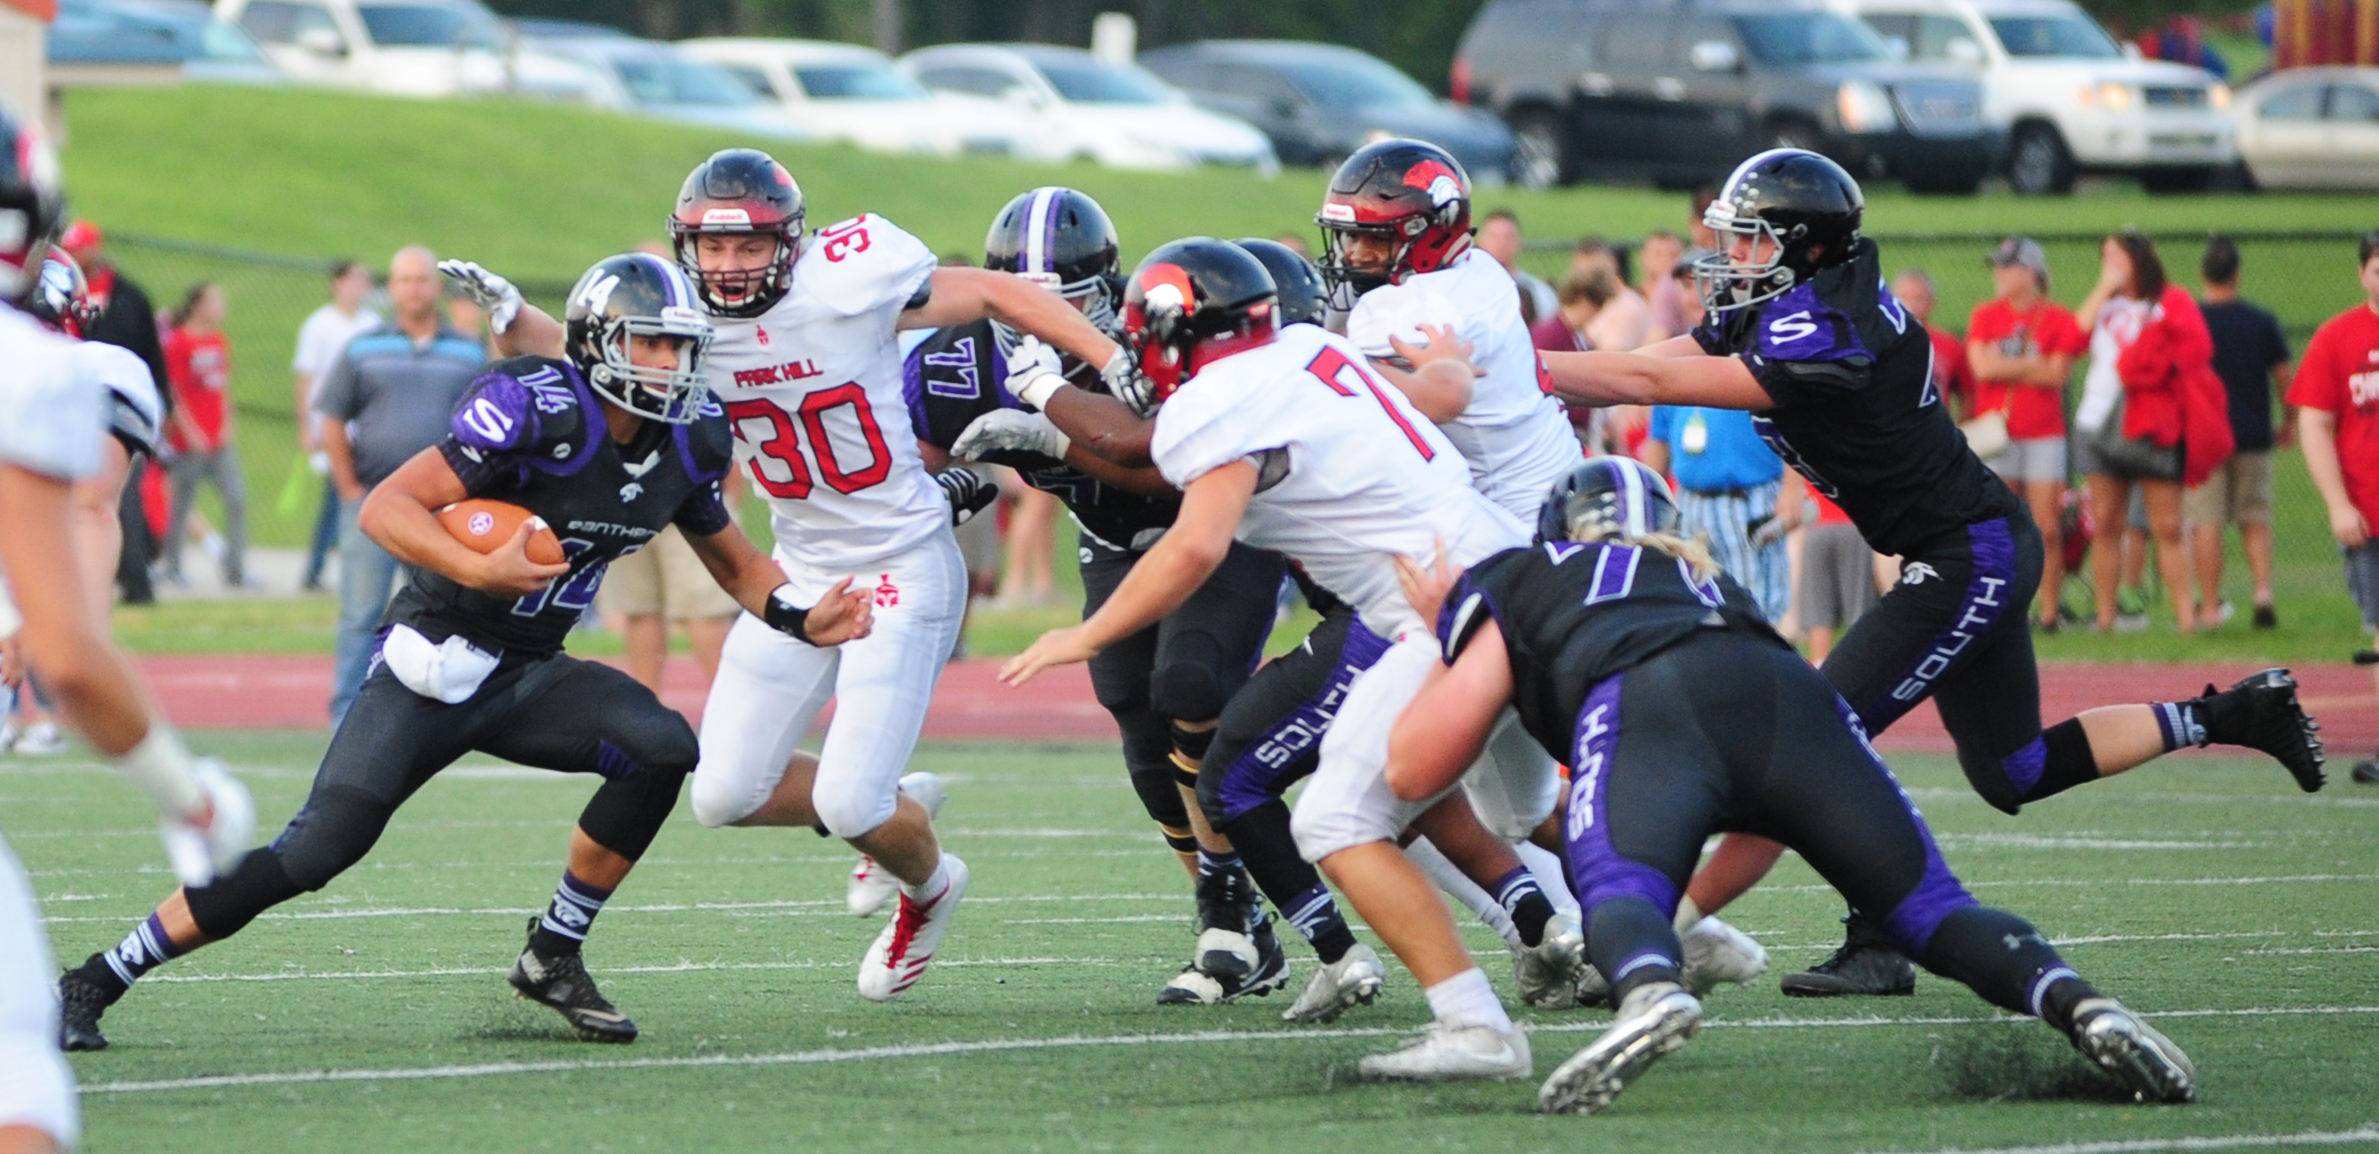 NICK INGRAM/Citizen photo Park Hill linebackers Haden Wallace (30) and Cole Gonier (7) converge trying to stop Park Hill South quarterback Billy Eggers during a game Friday, Sept. 1 at Park Hill District Stadium in Kansas City, Mo.